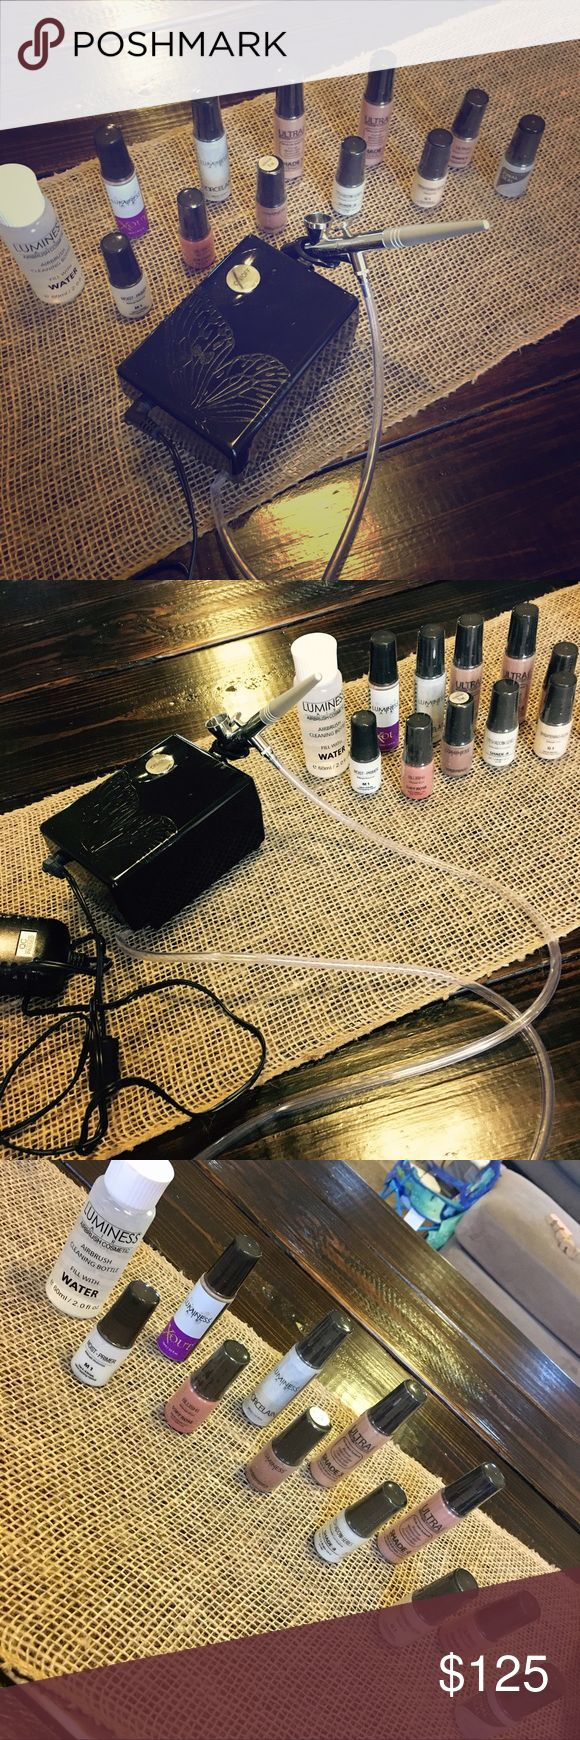 Luminess Air 3 Speed Pro System (NWOT, tried once) Effortlessly achieve pro quality, airbrushed perfection results at home with this airbrush cosmetics system. The 3-speed Pro is designed with 3 pre-programmed air speeds: Light for eye shadow and eyebrow application, Medium for face and neck application and High for full body application. Kit Includes:3-Speed Pro Compressor,Technique Stylus,AC Adaptor,4-0.25oz Ultra foundation,1-0.25oz Blush,1-0.25oz Skin Brightening Glow,1-0.25oz…